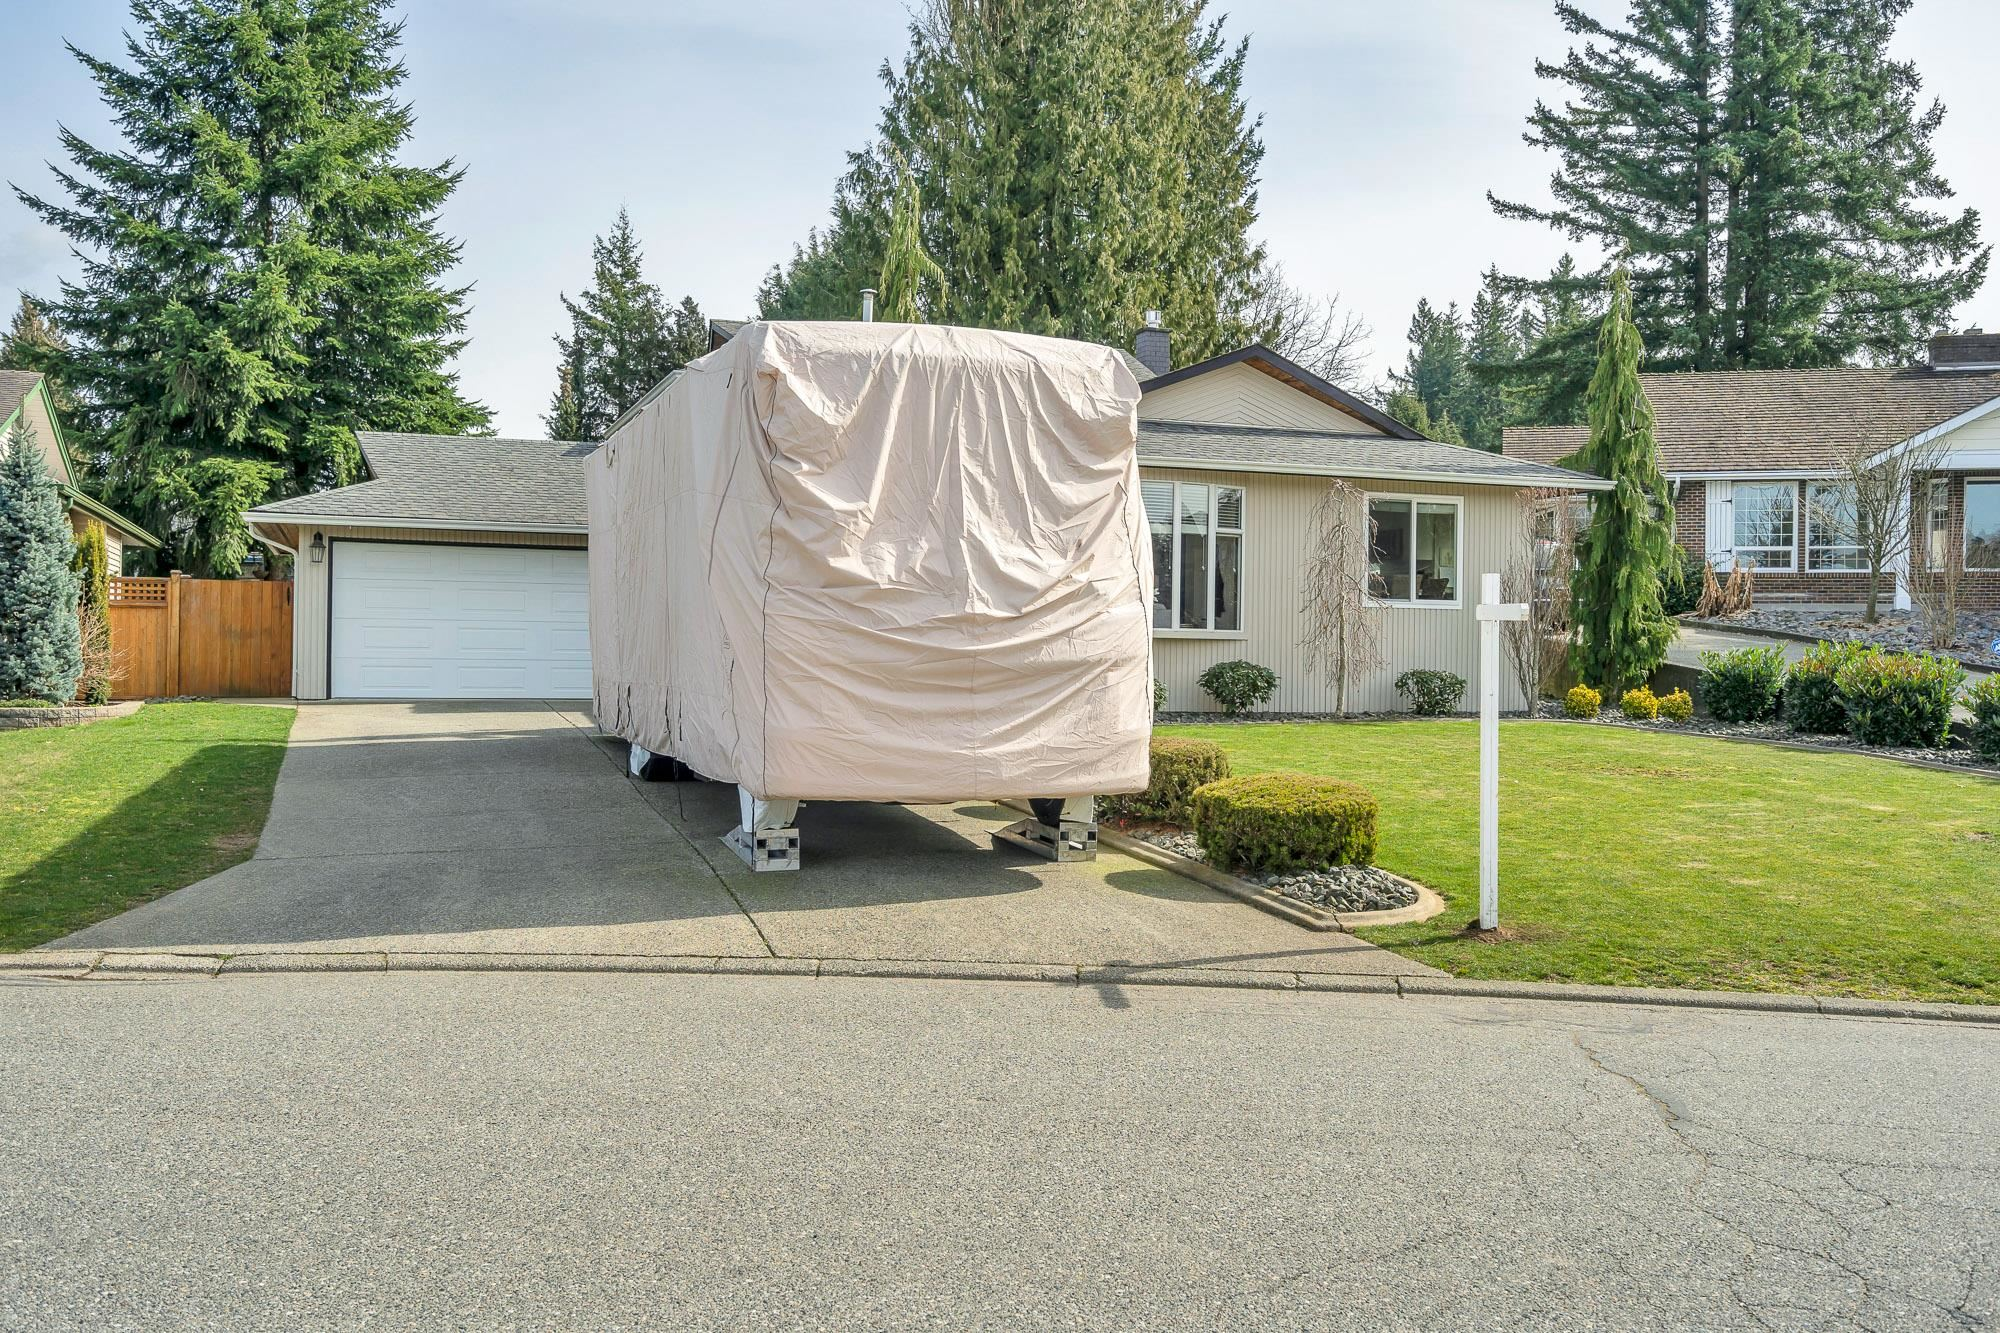 32726 BELLVUE CRESCENT - Central Abbotsford House/Single Family for sale, 4 Bedrooms (R2627062) - #1